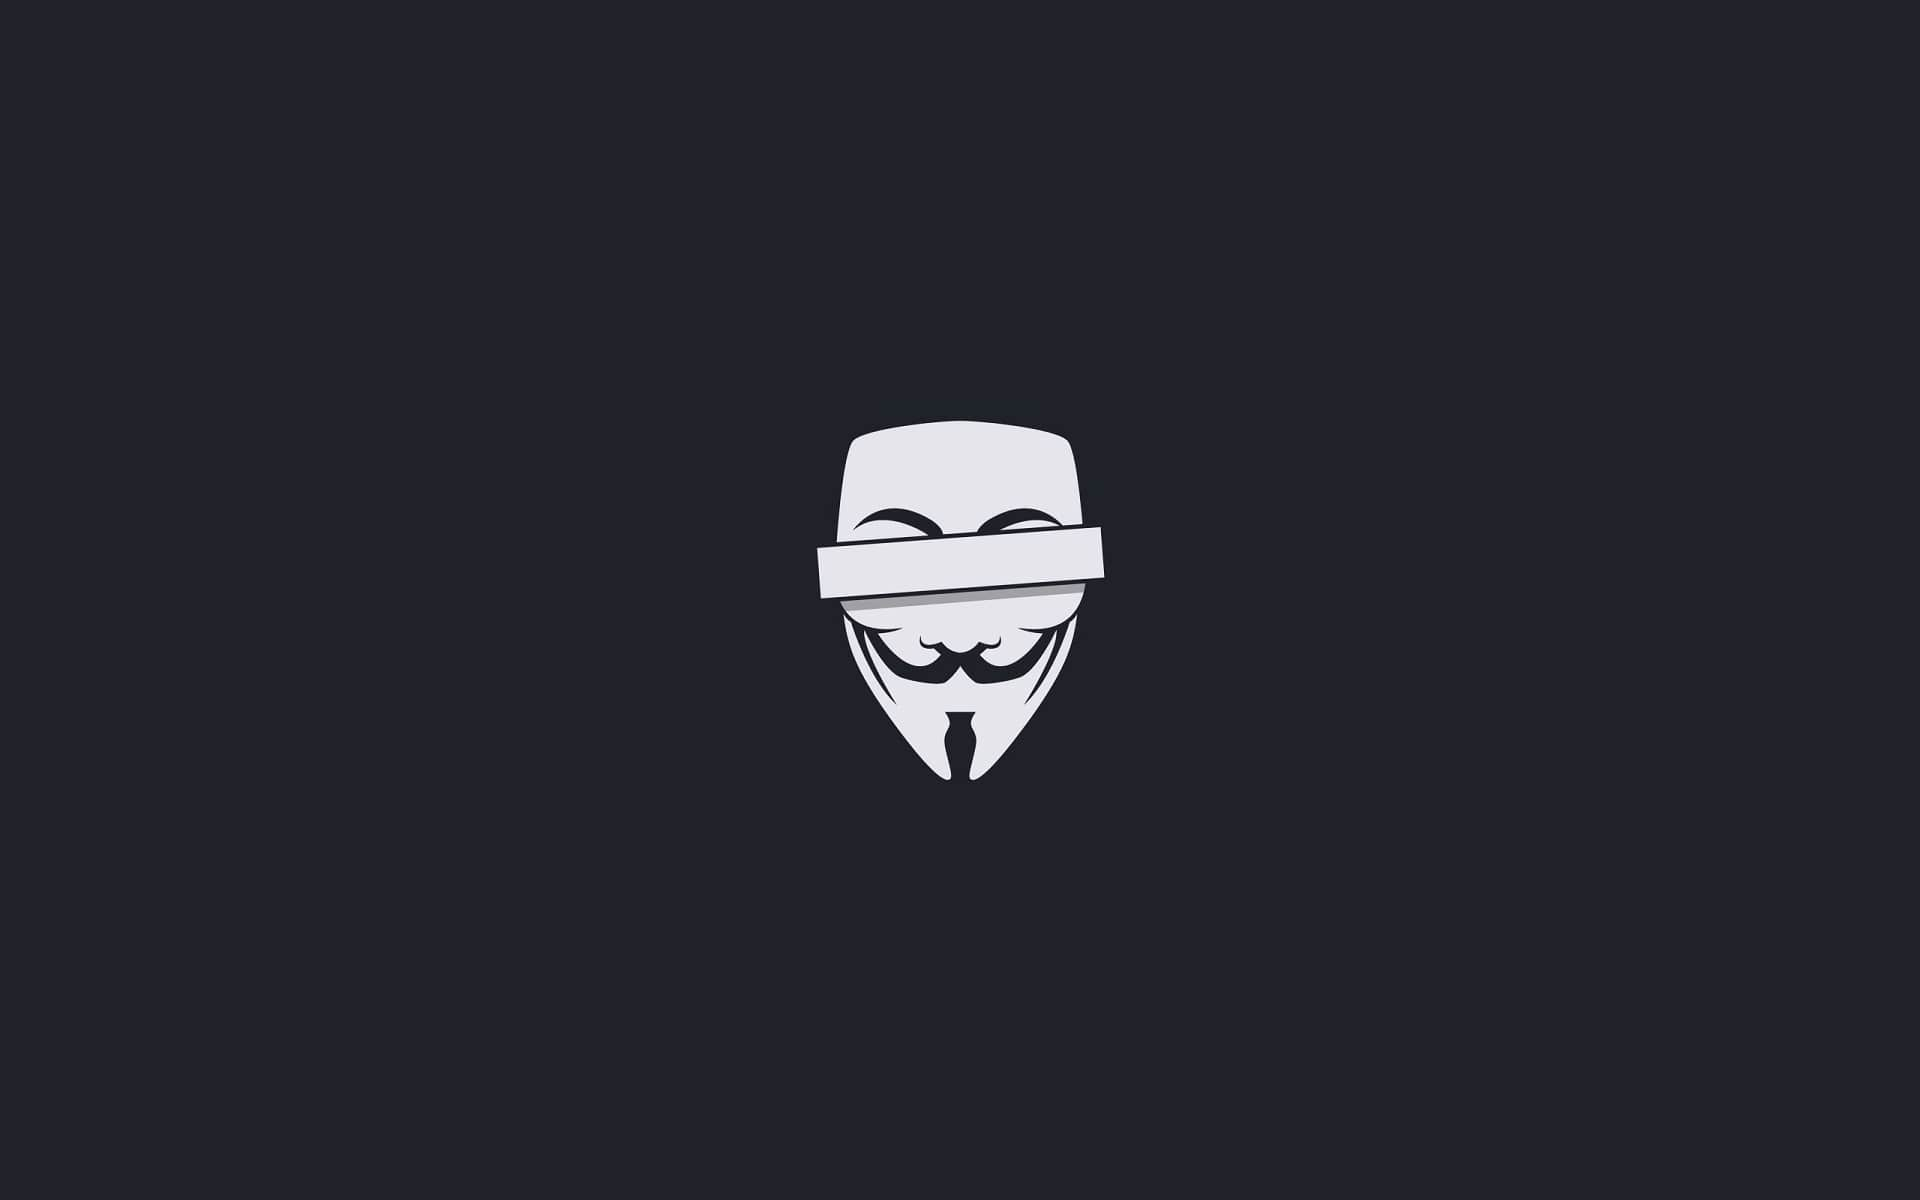 Wallpaper Of Mask V For Vendetta Movie Minimalism Background